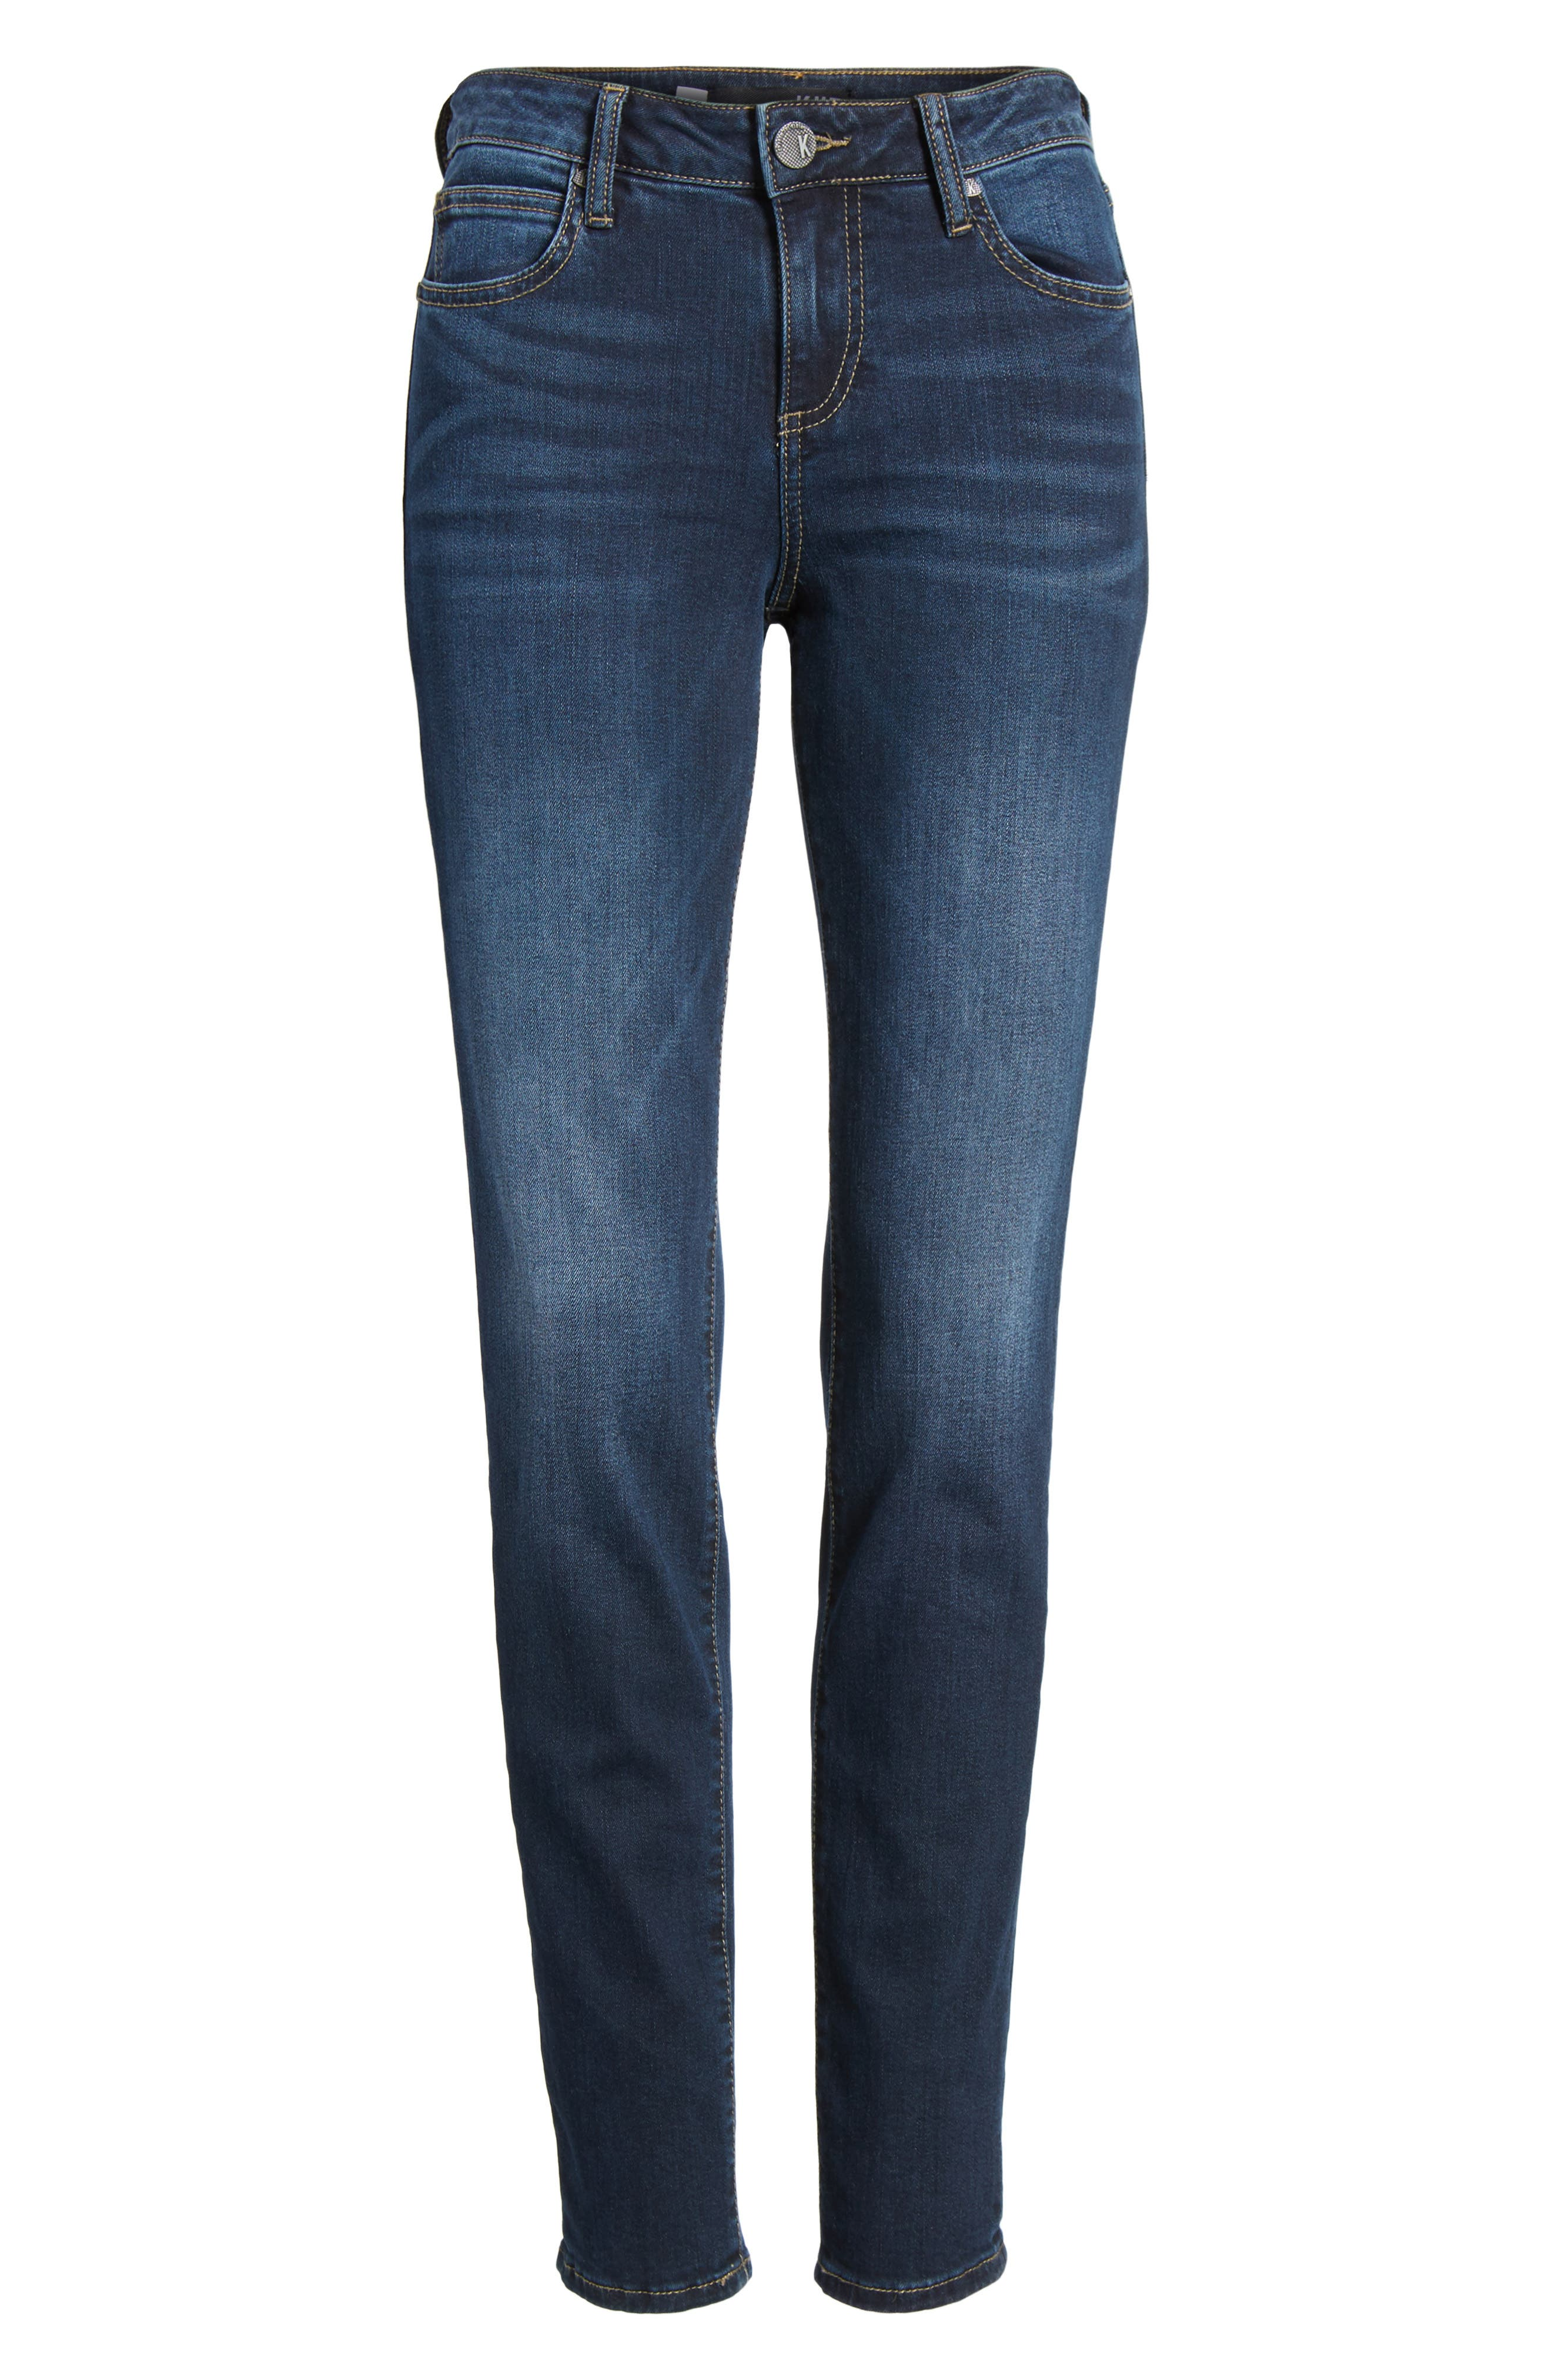 Diana Curvy Fit Skinny Jeans,                             Alternate thumbnail 6, color,